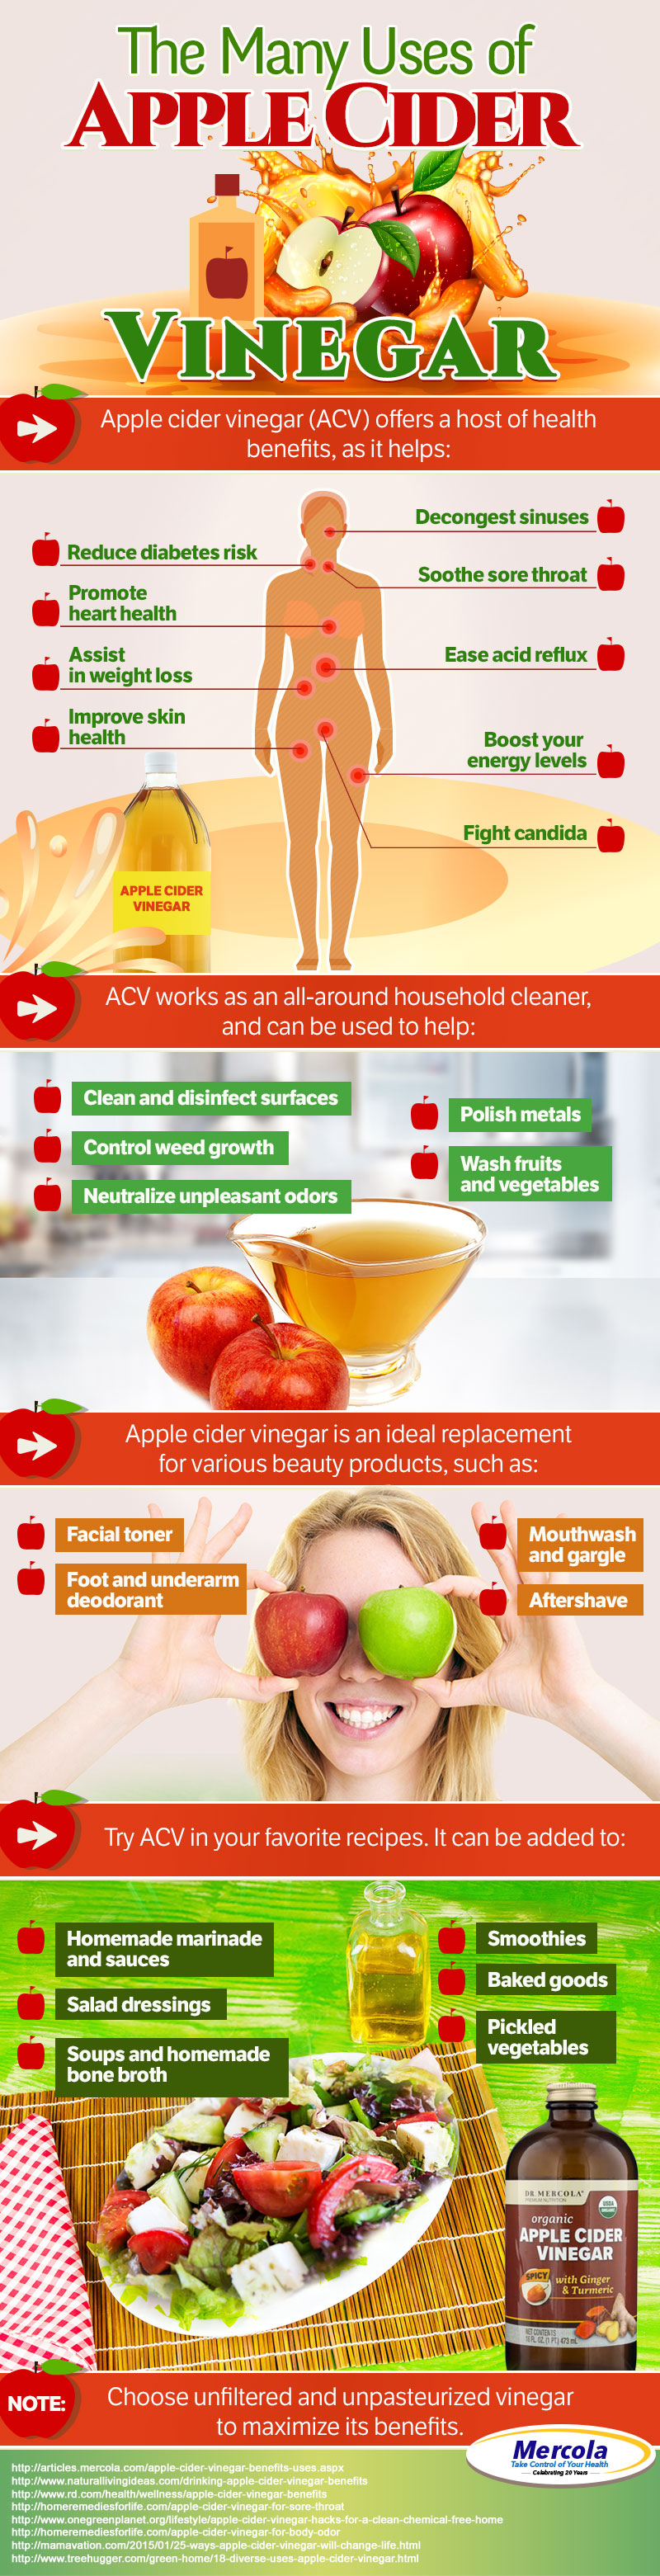 Apple Cider Vinegar Uses Infographic